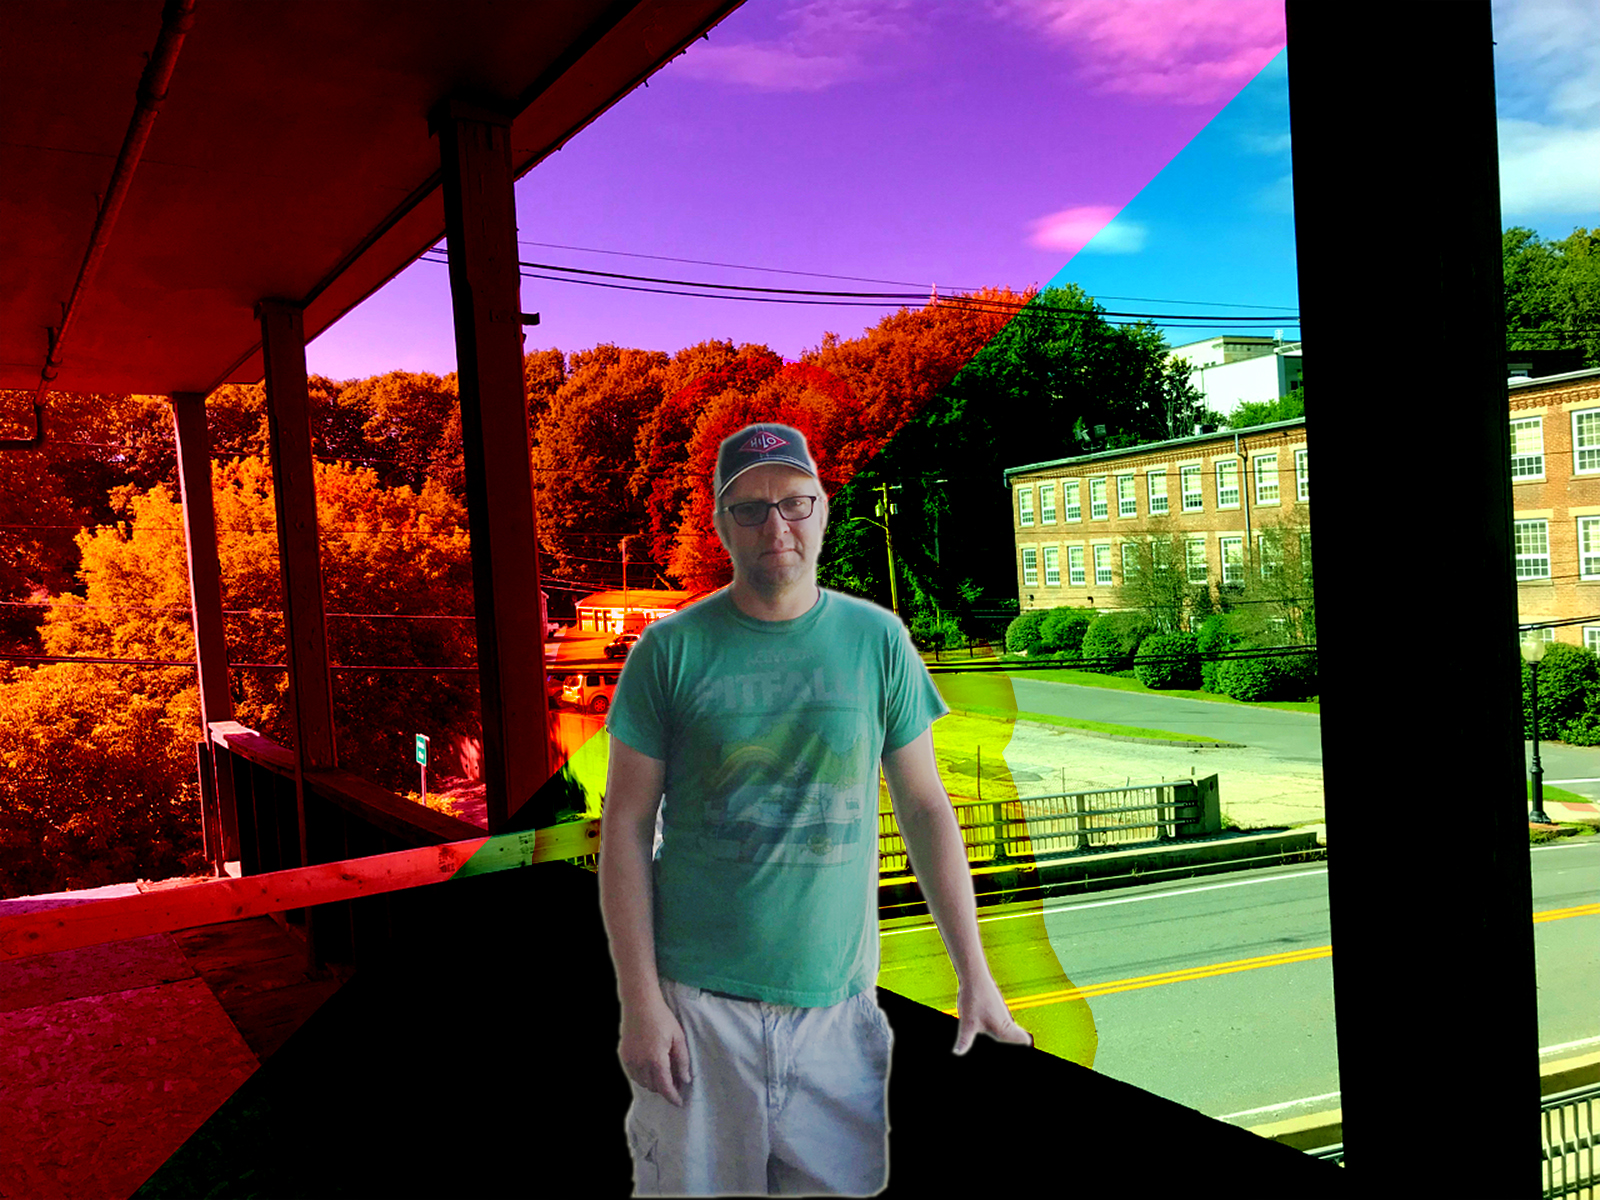 Brian Miksic, standing on the balcony off the Green Room at HiLo North Adams, overlooking Union Street; photo and image effects by Jason Velázquez.